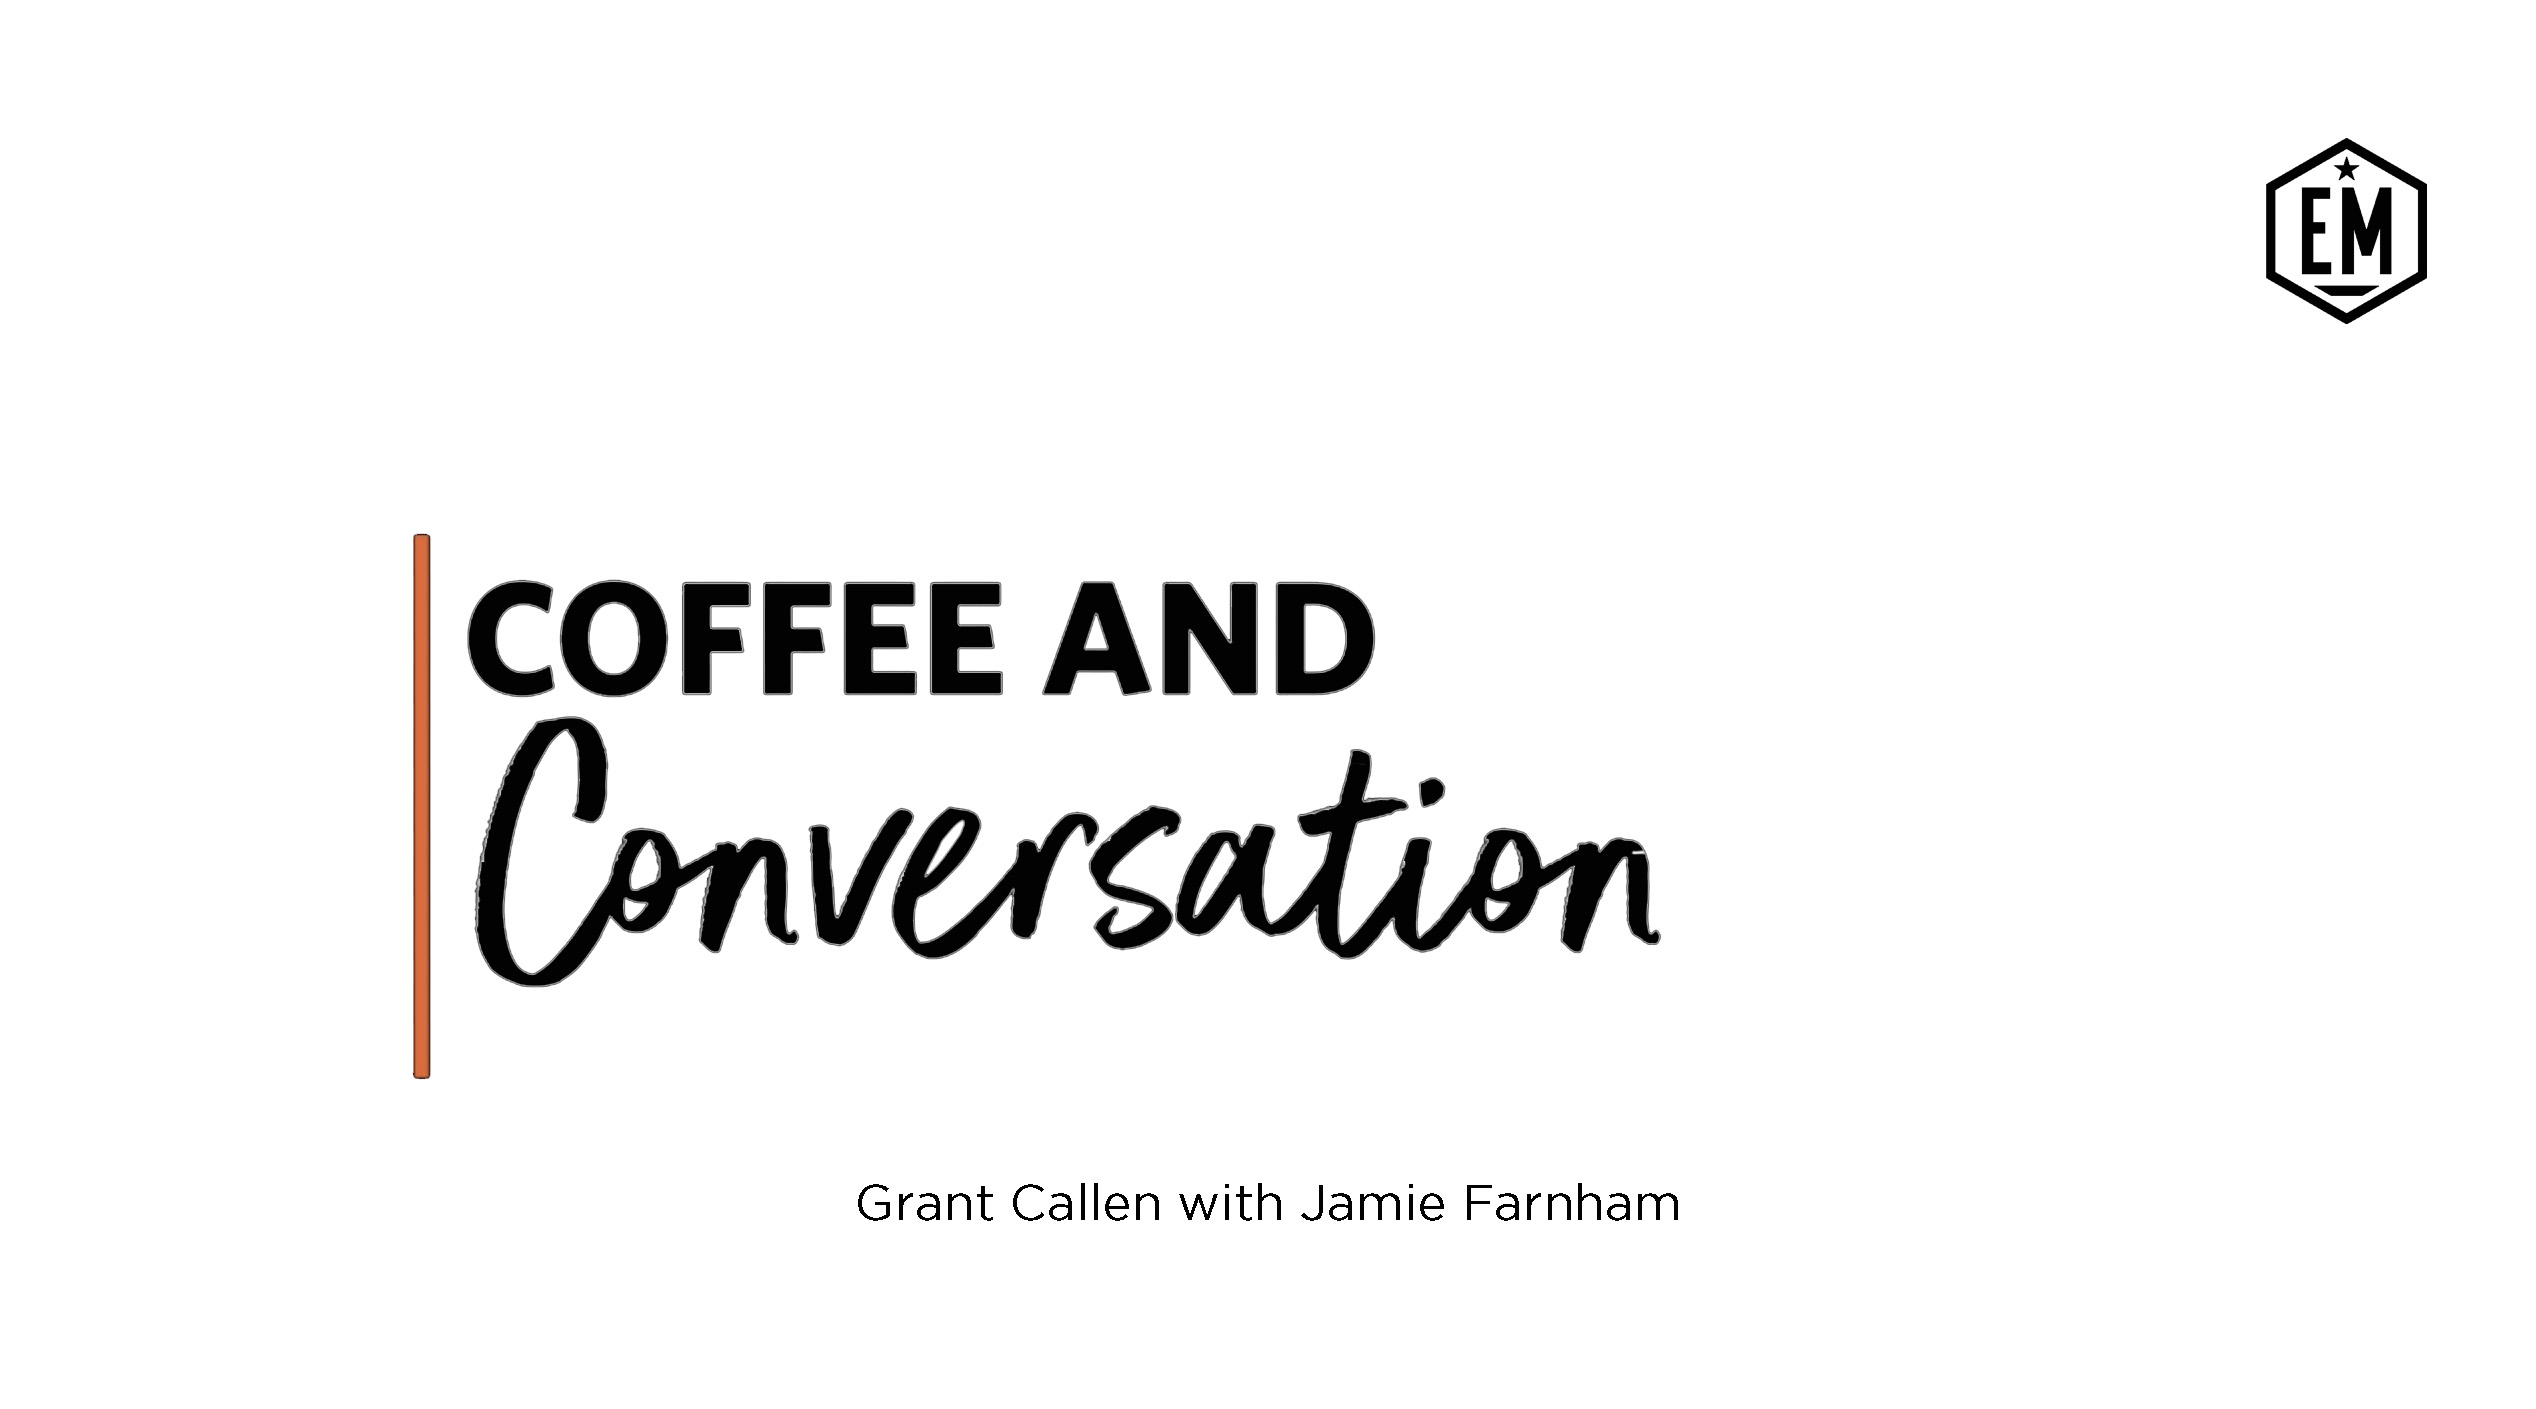 Coffee and Conversation - Jamie Farnham